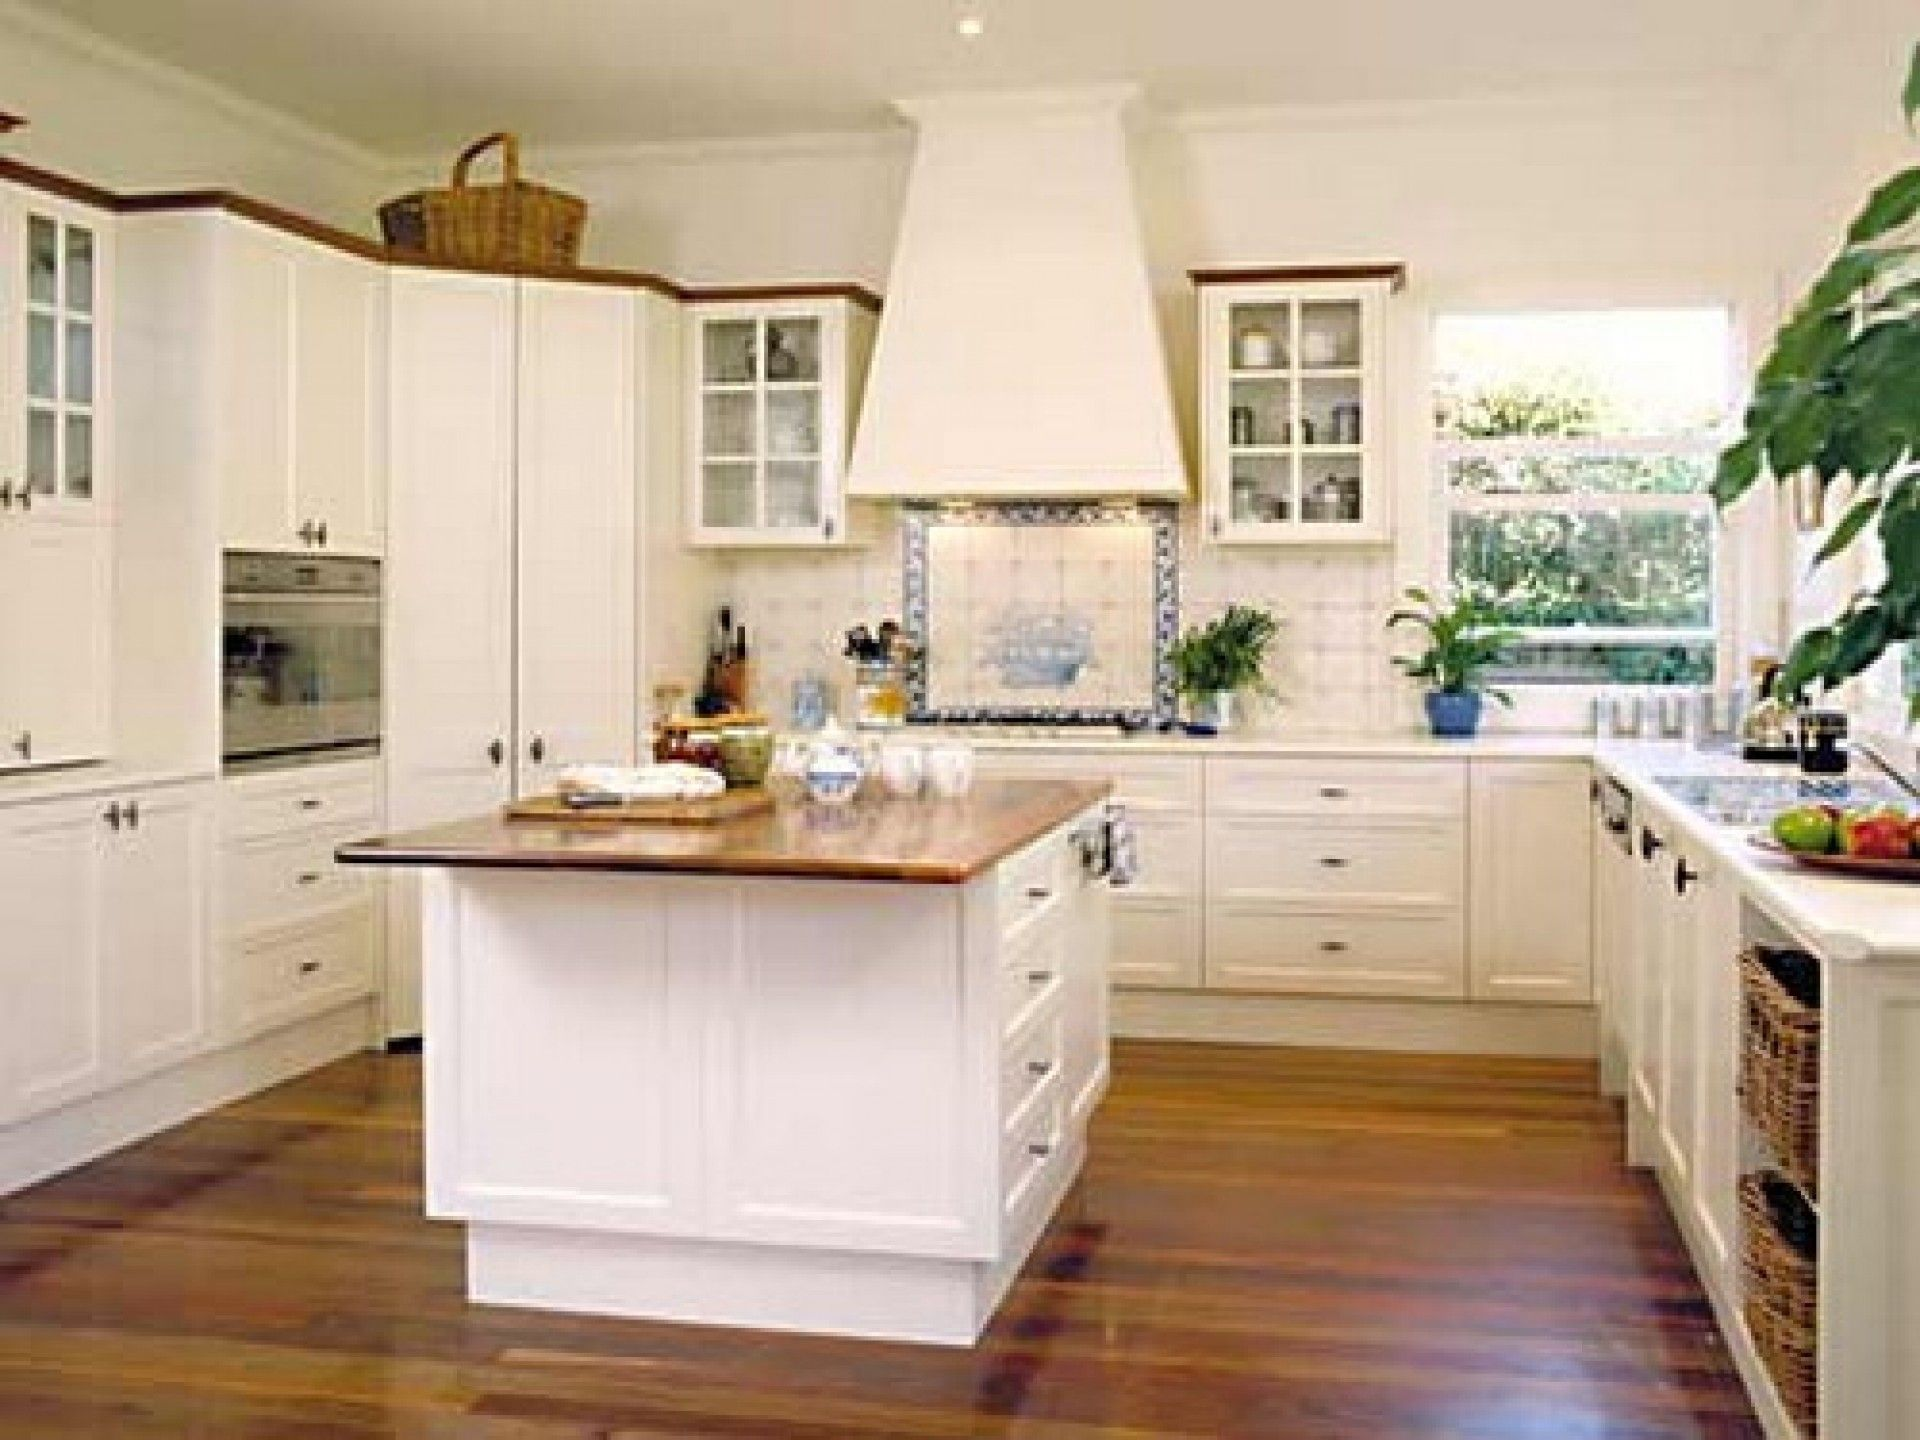 Stunning french provincial kitchen design ideas with for White kitchen designs